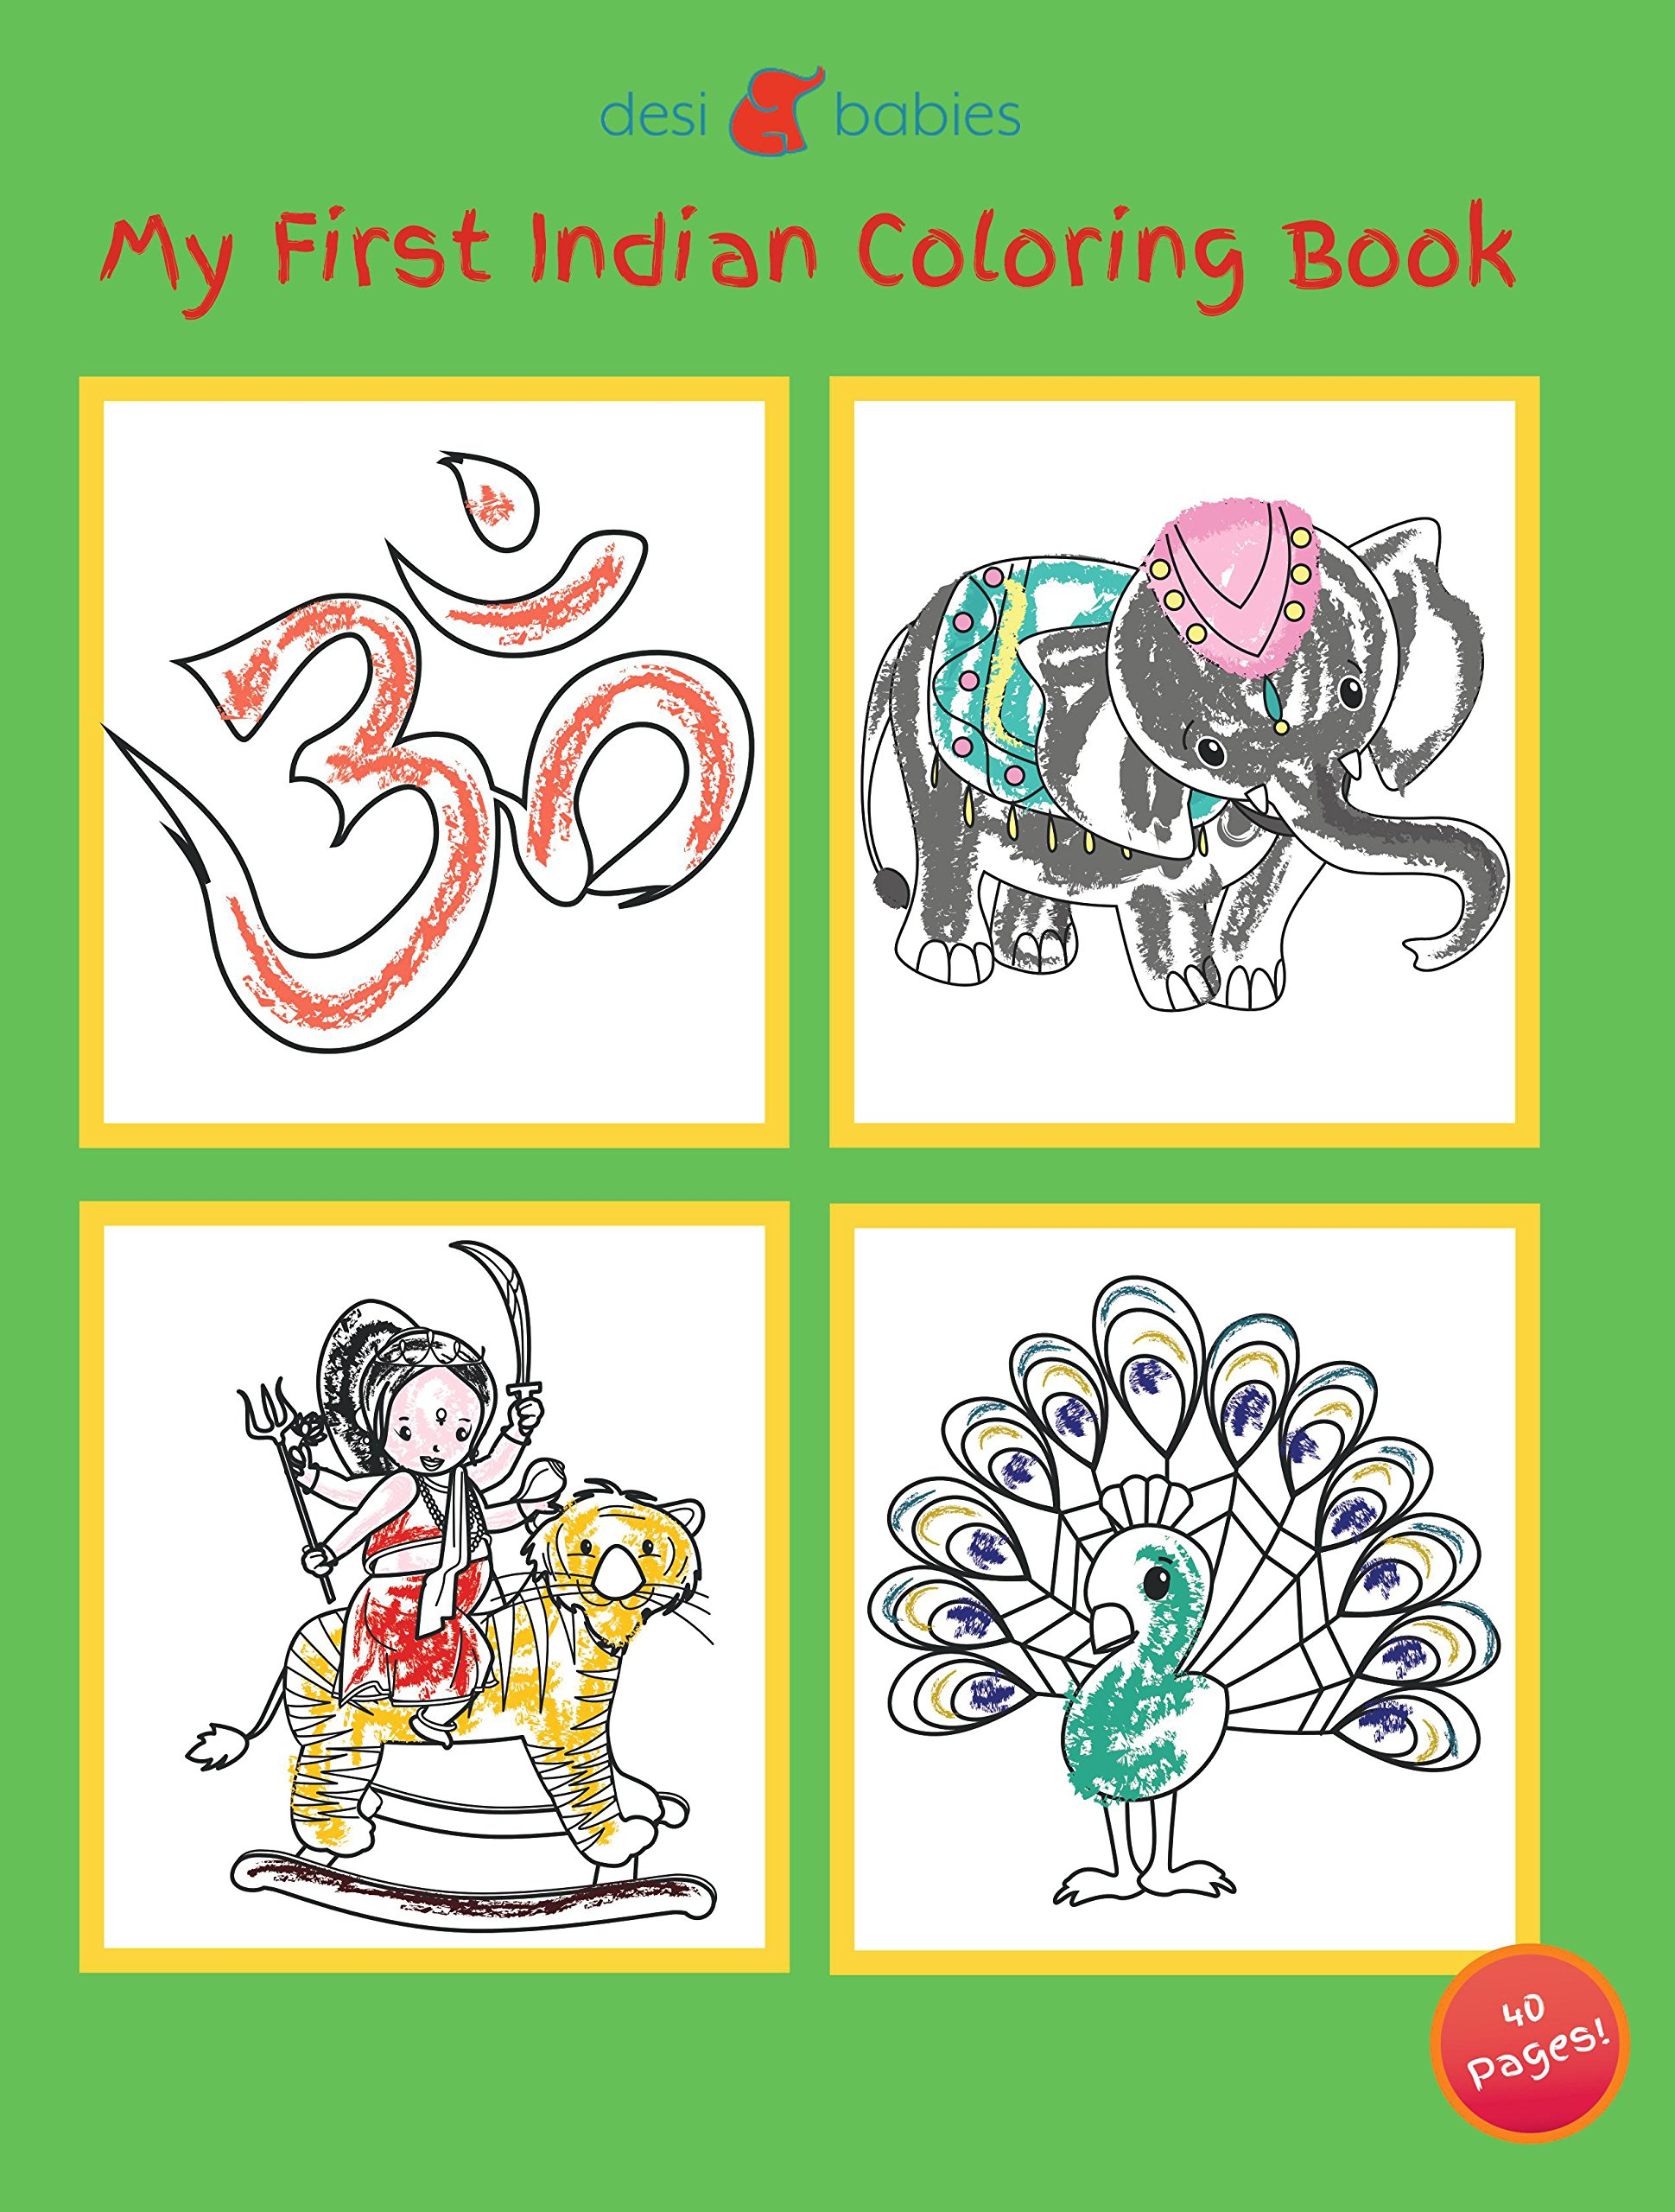 My First Indian Coloring Book - (Desi Babies) Cultural ...